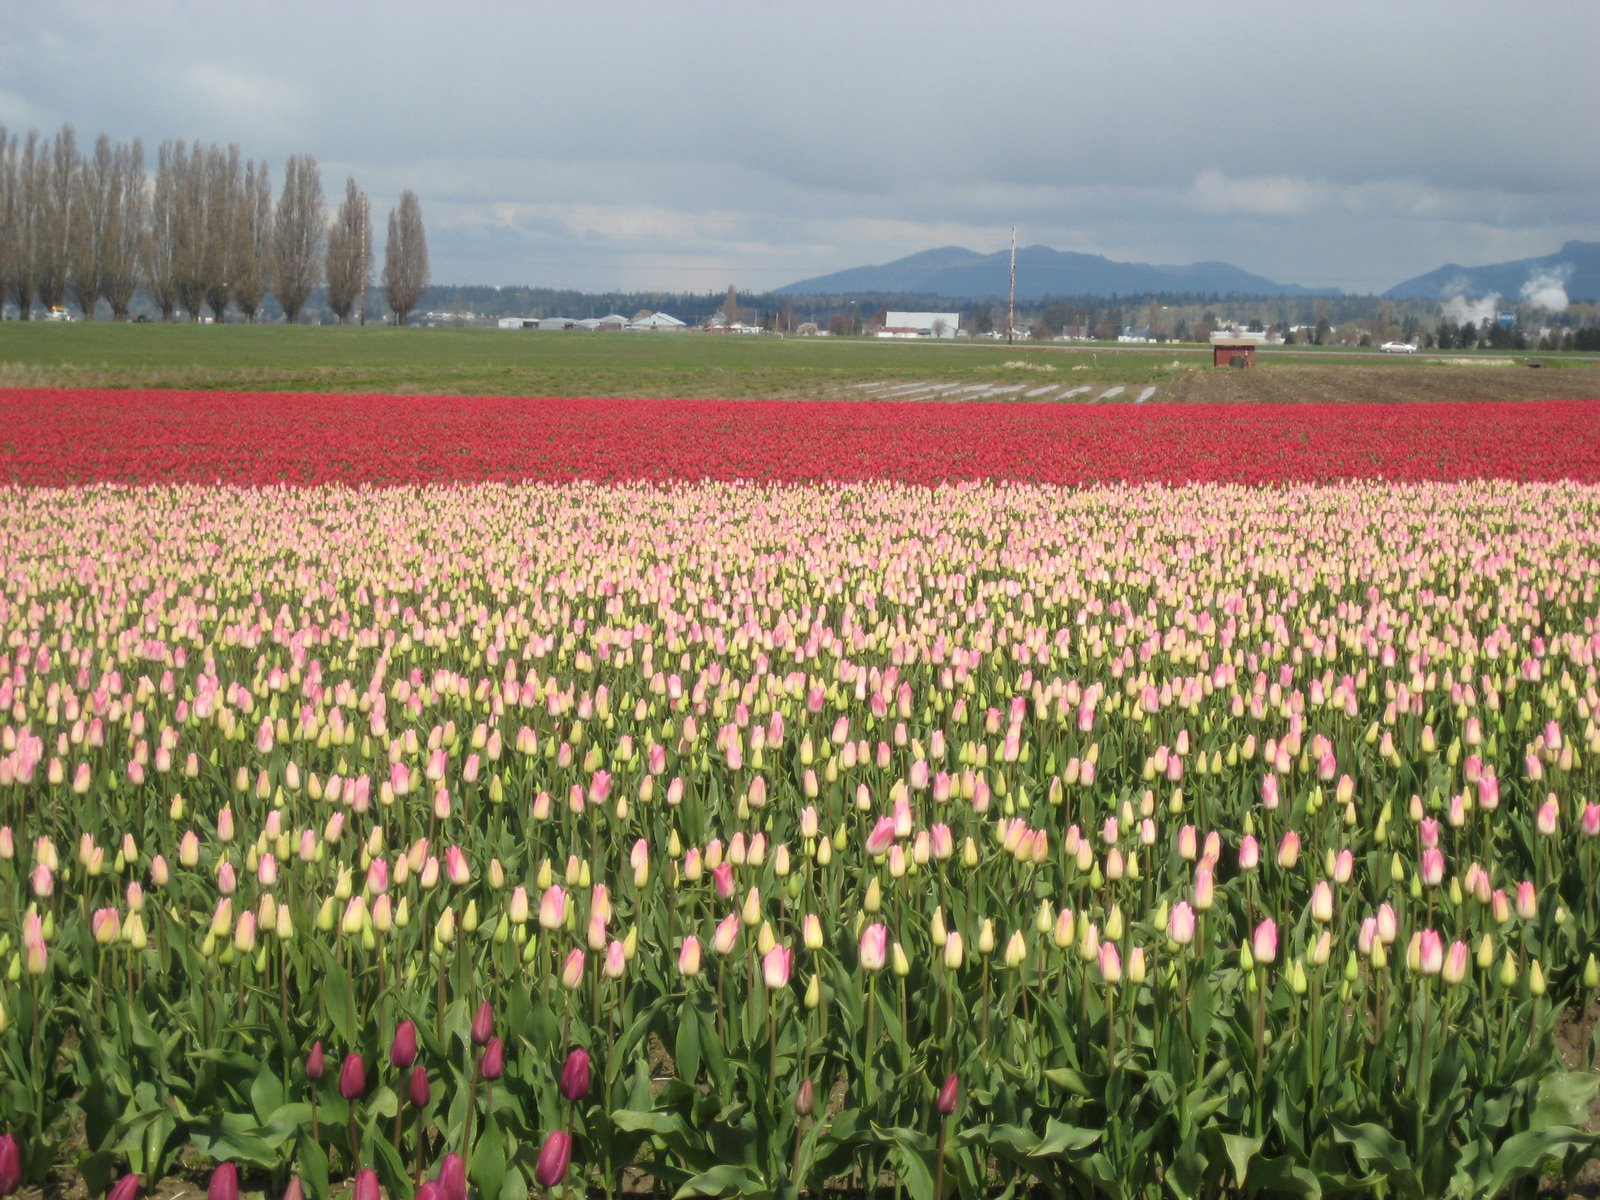 Enjoy.  I took this photo at a Tulip Festival outside of Seattle.